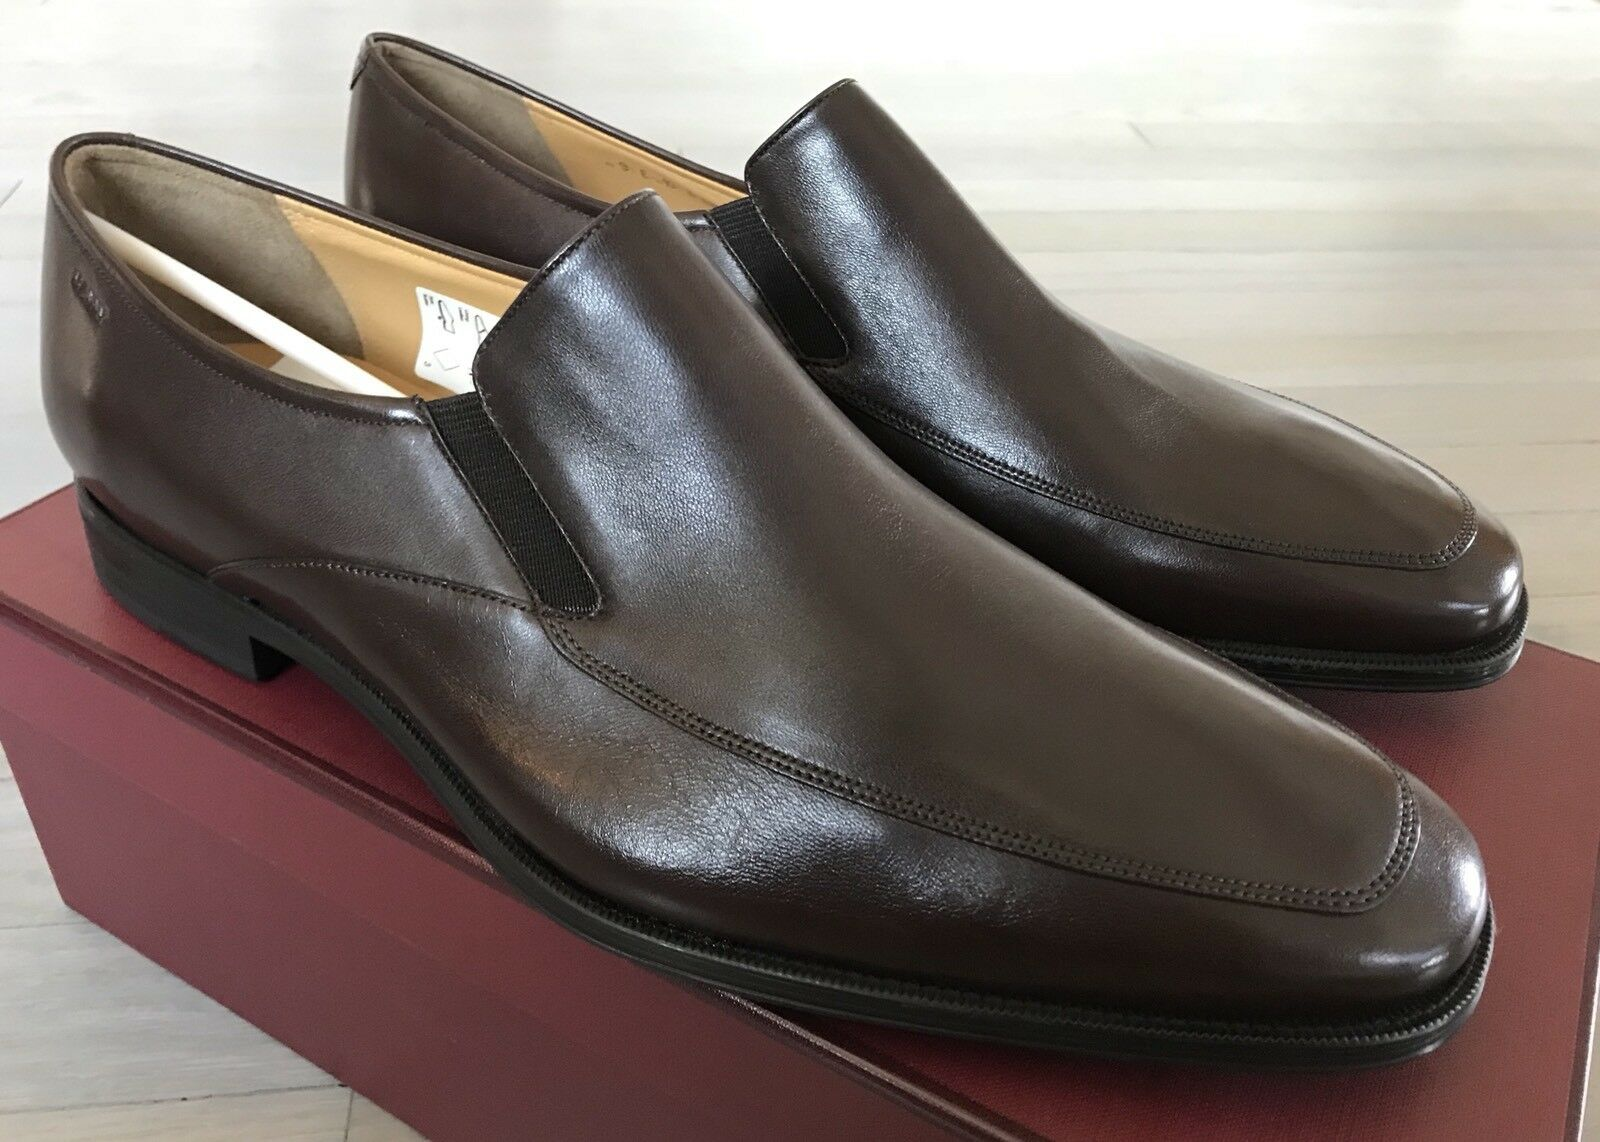 600  Bally Pelle Brown Thor Pelle Bally Loafers Size US 10.5 Made in Switzerland ab9202